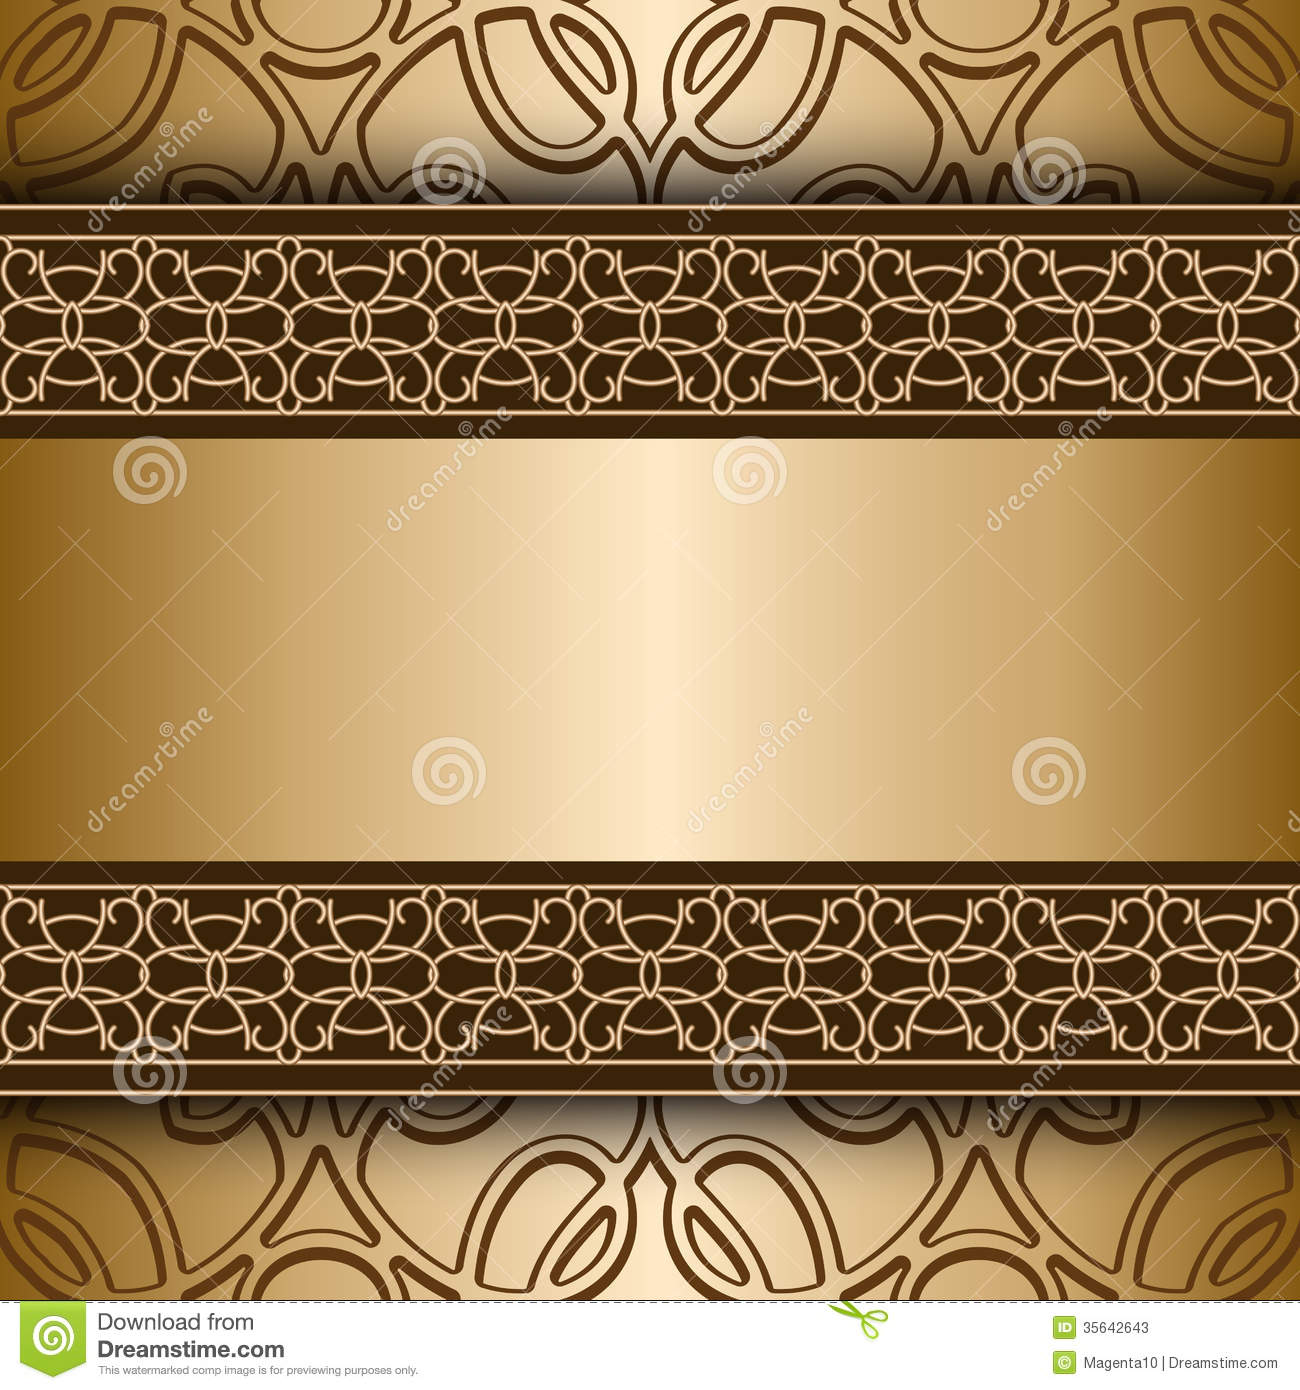 Gold background stock vector. Illustration of lacy, cover ...